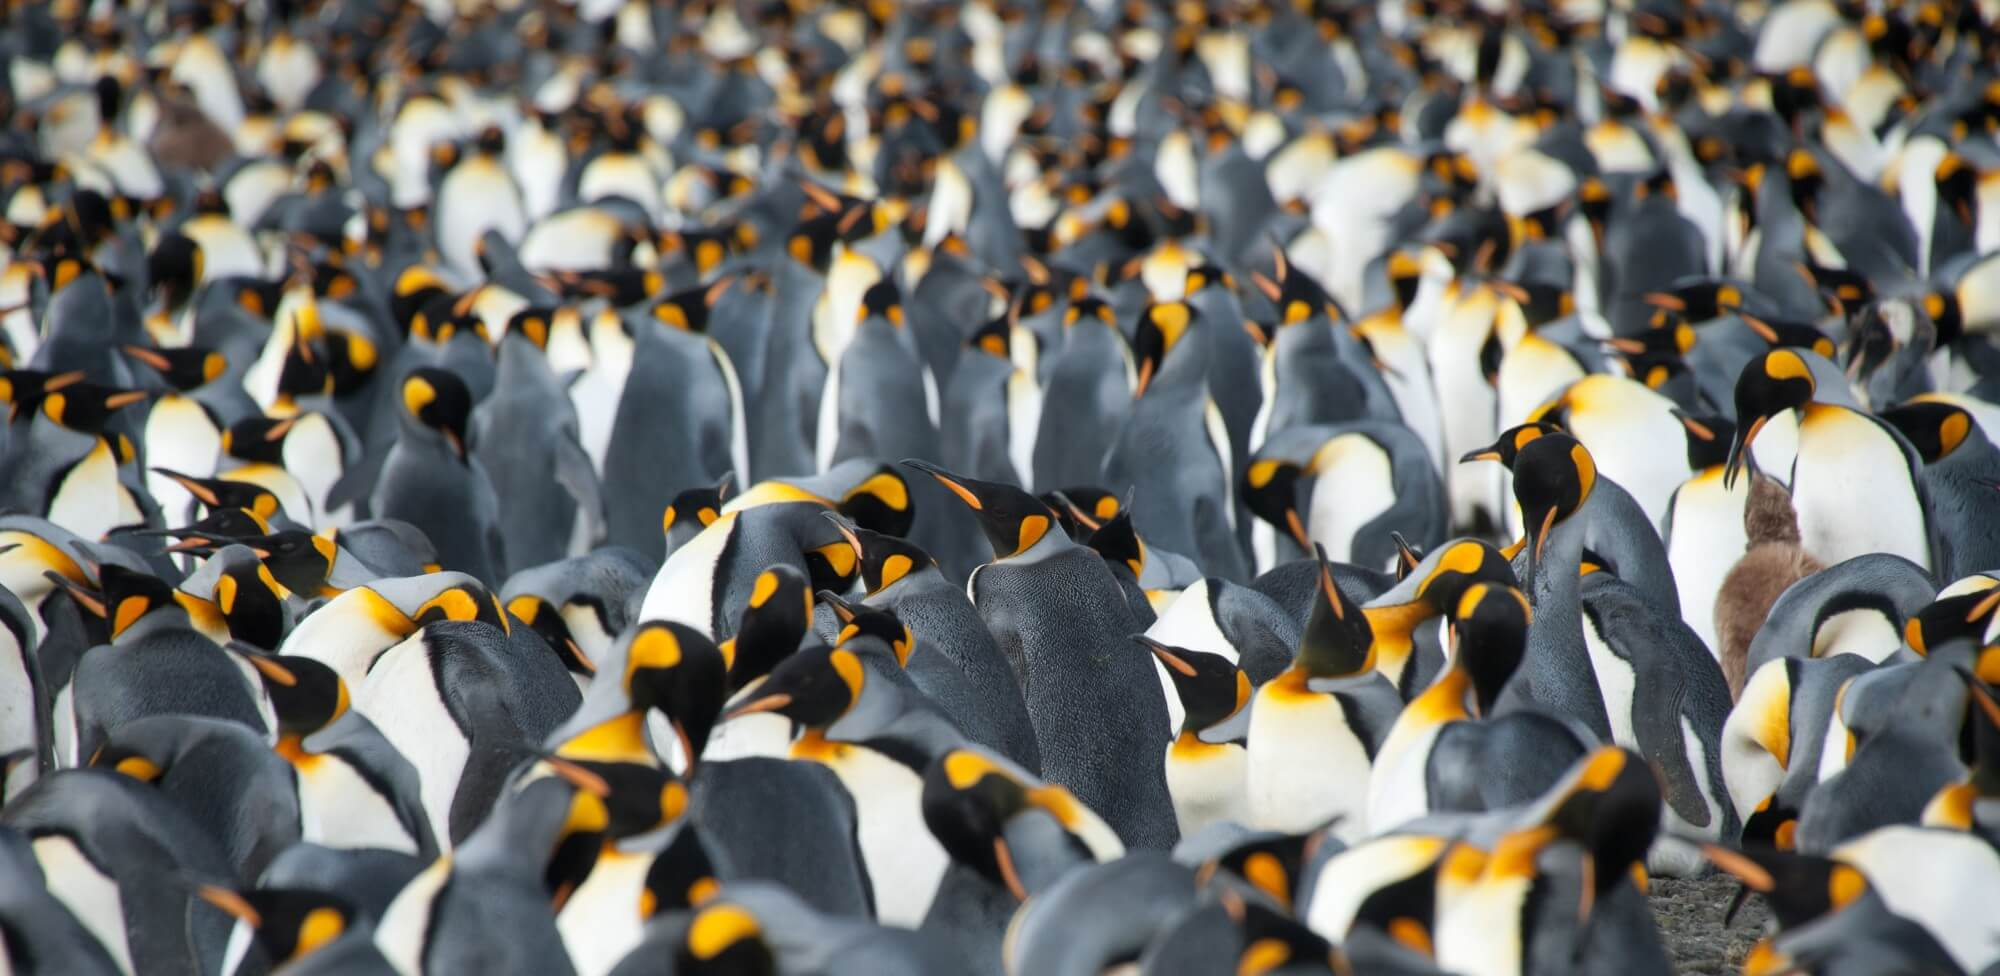 Antarctica-King-Penguins-by-Erwin-Vermeulen